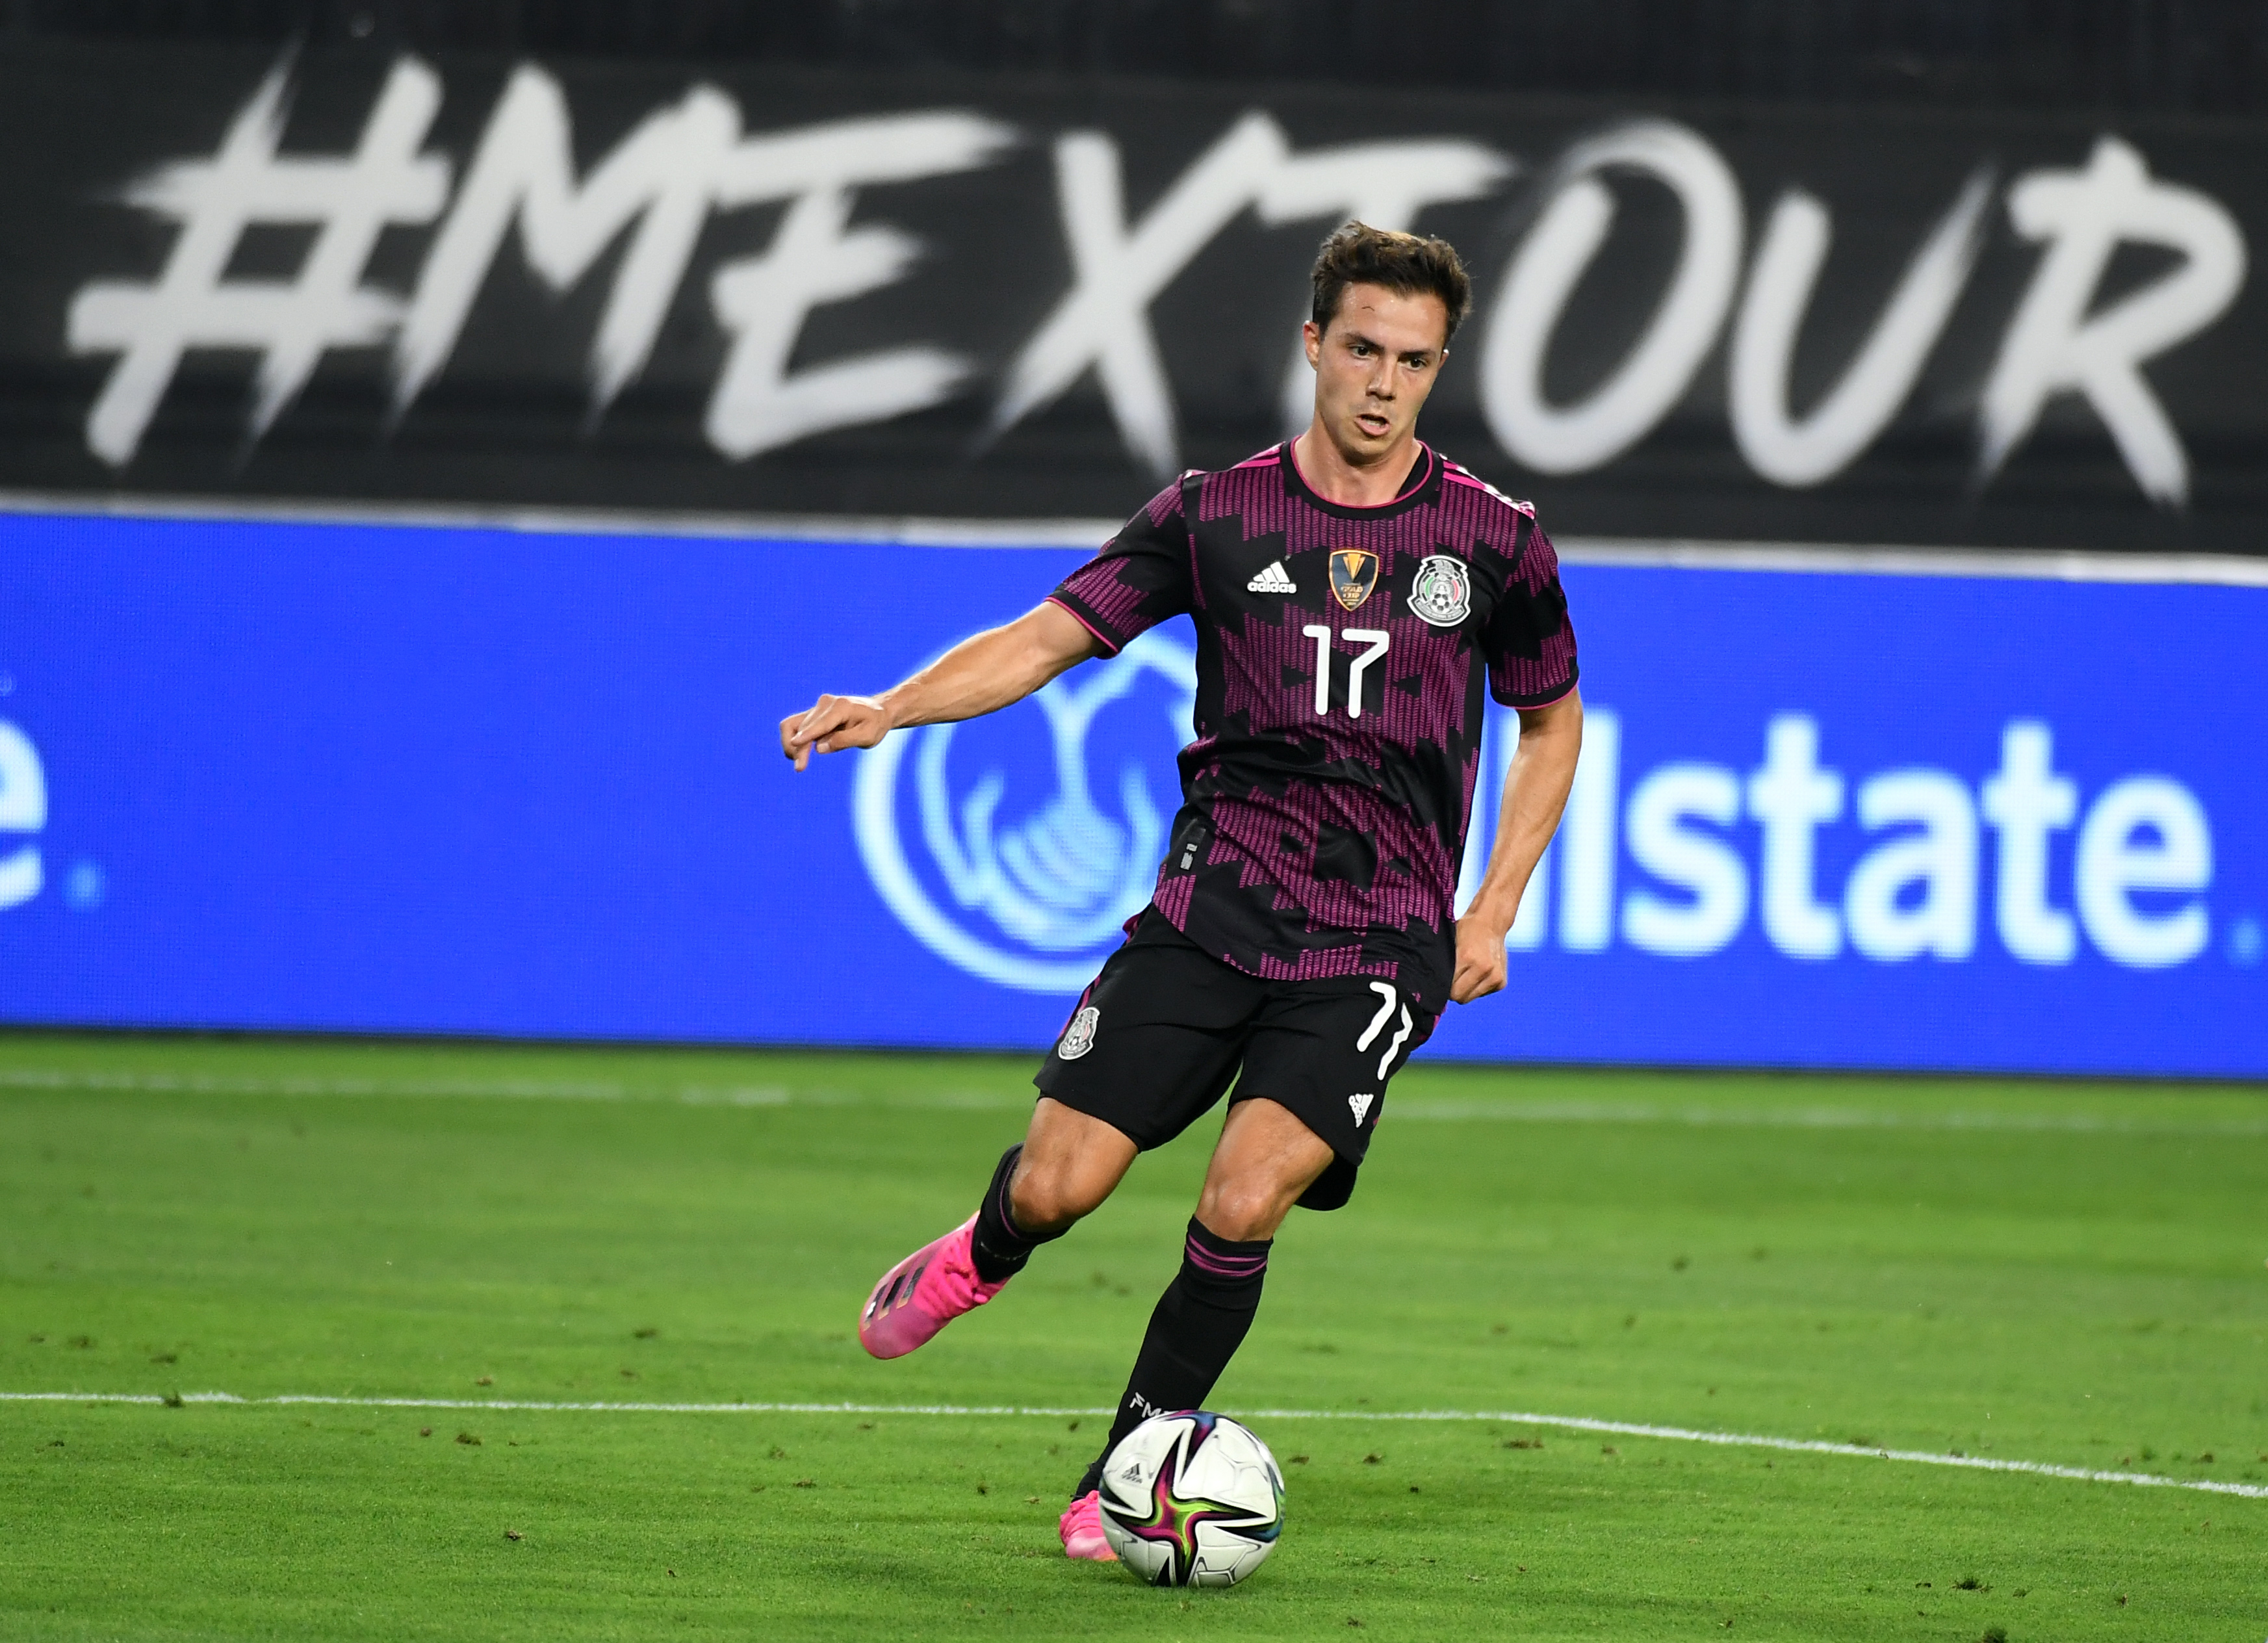 Intriguing semifinal matches in men's soccer at the 2020 Olympics